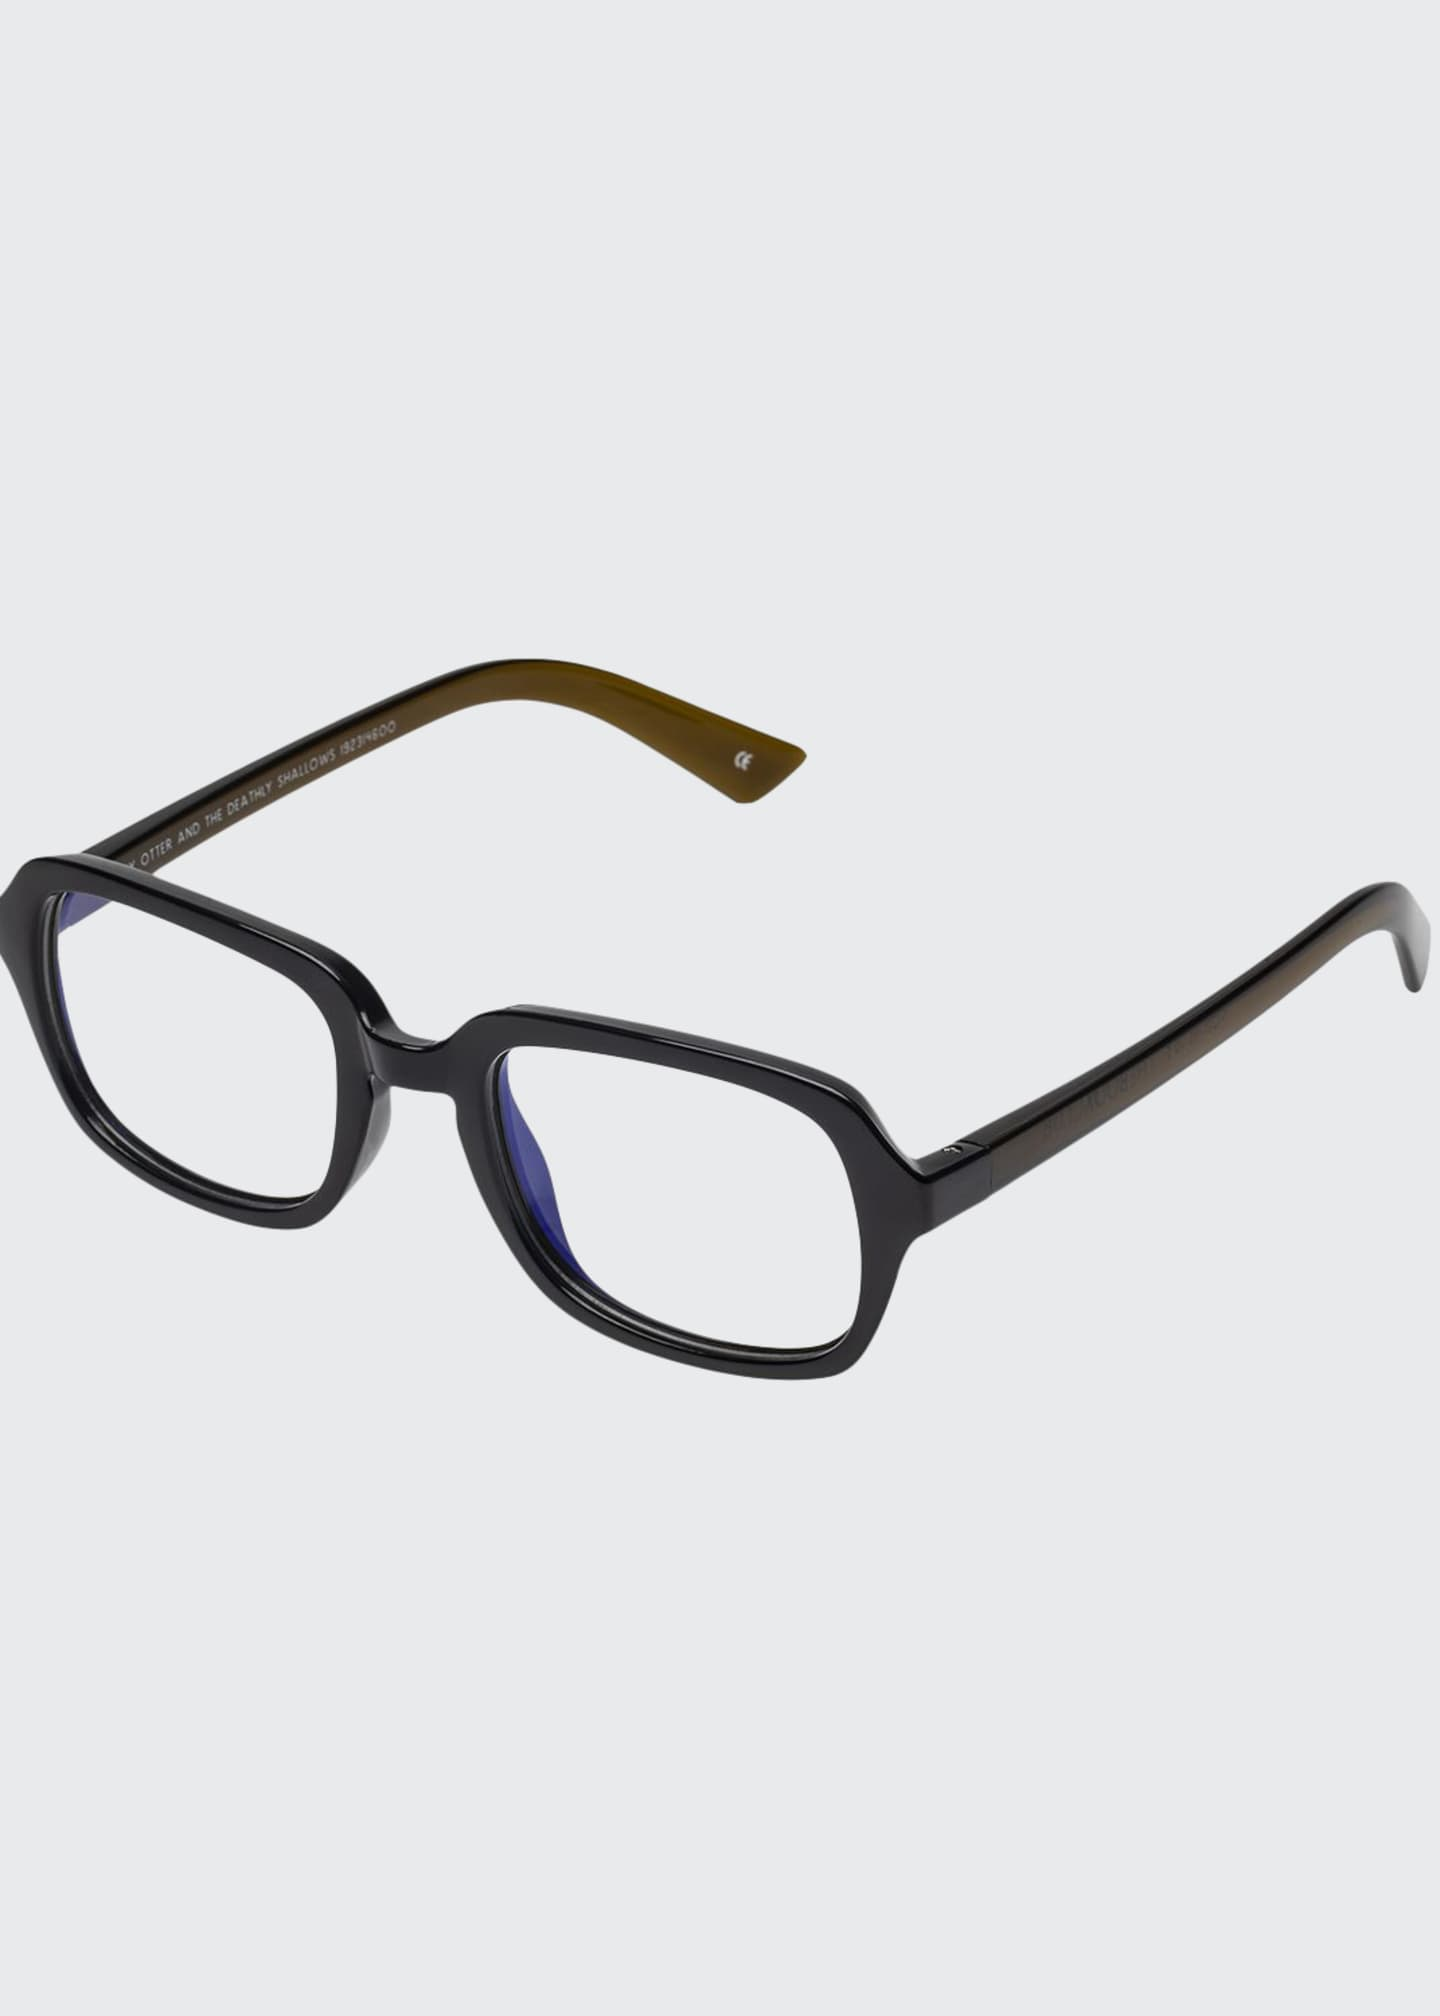 The Book Club Hairy Otter Rectangle Reading Glasses